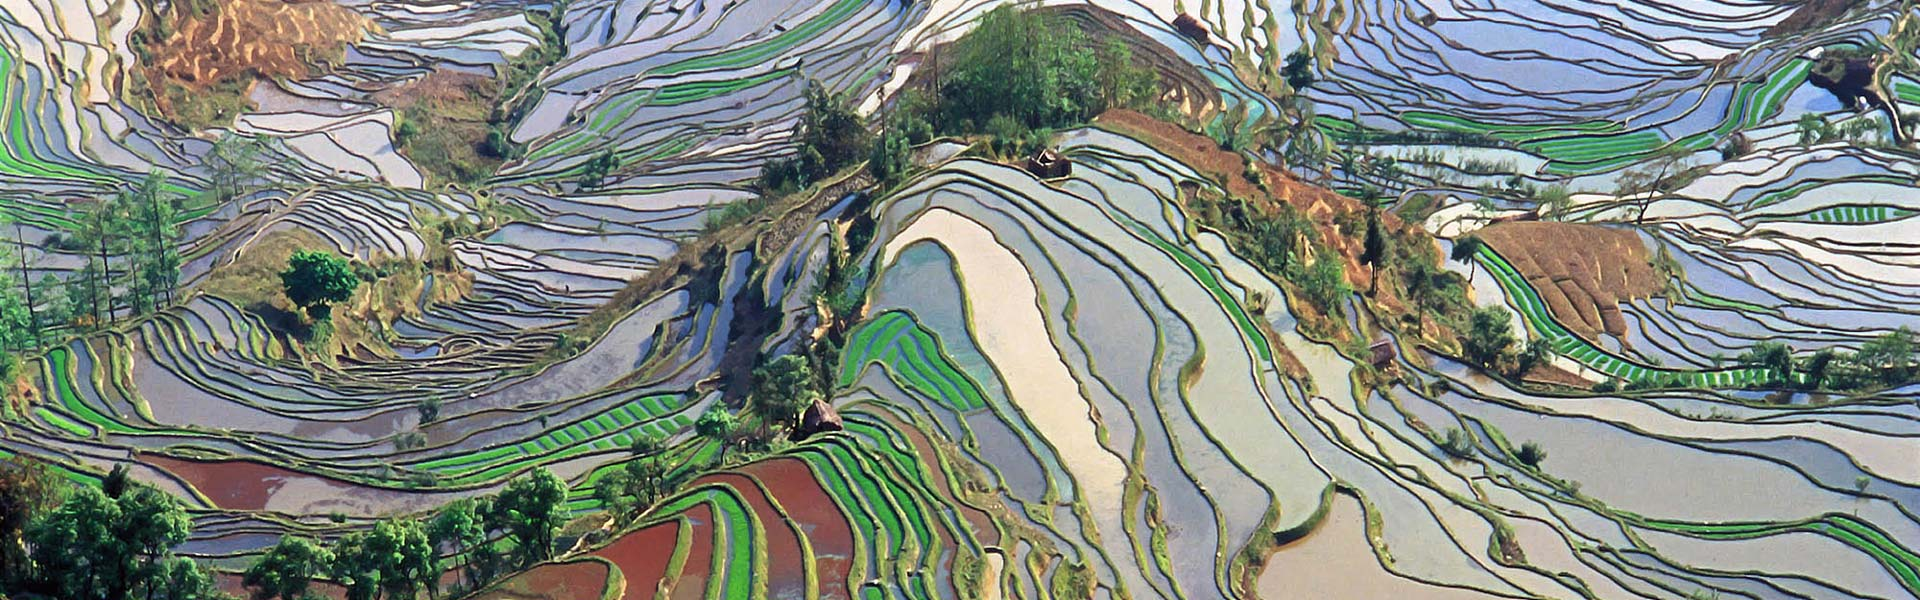 3 Days Jianshui and Yuanyang Hani Rice Terraces Group Tour